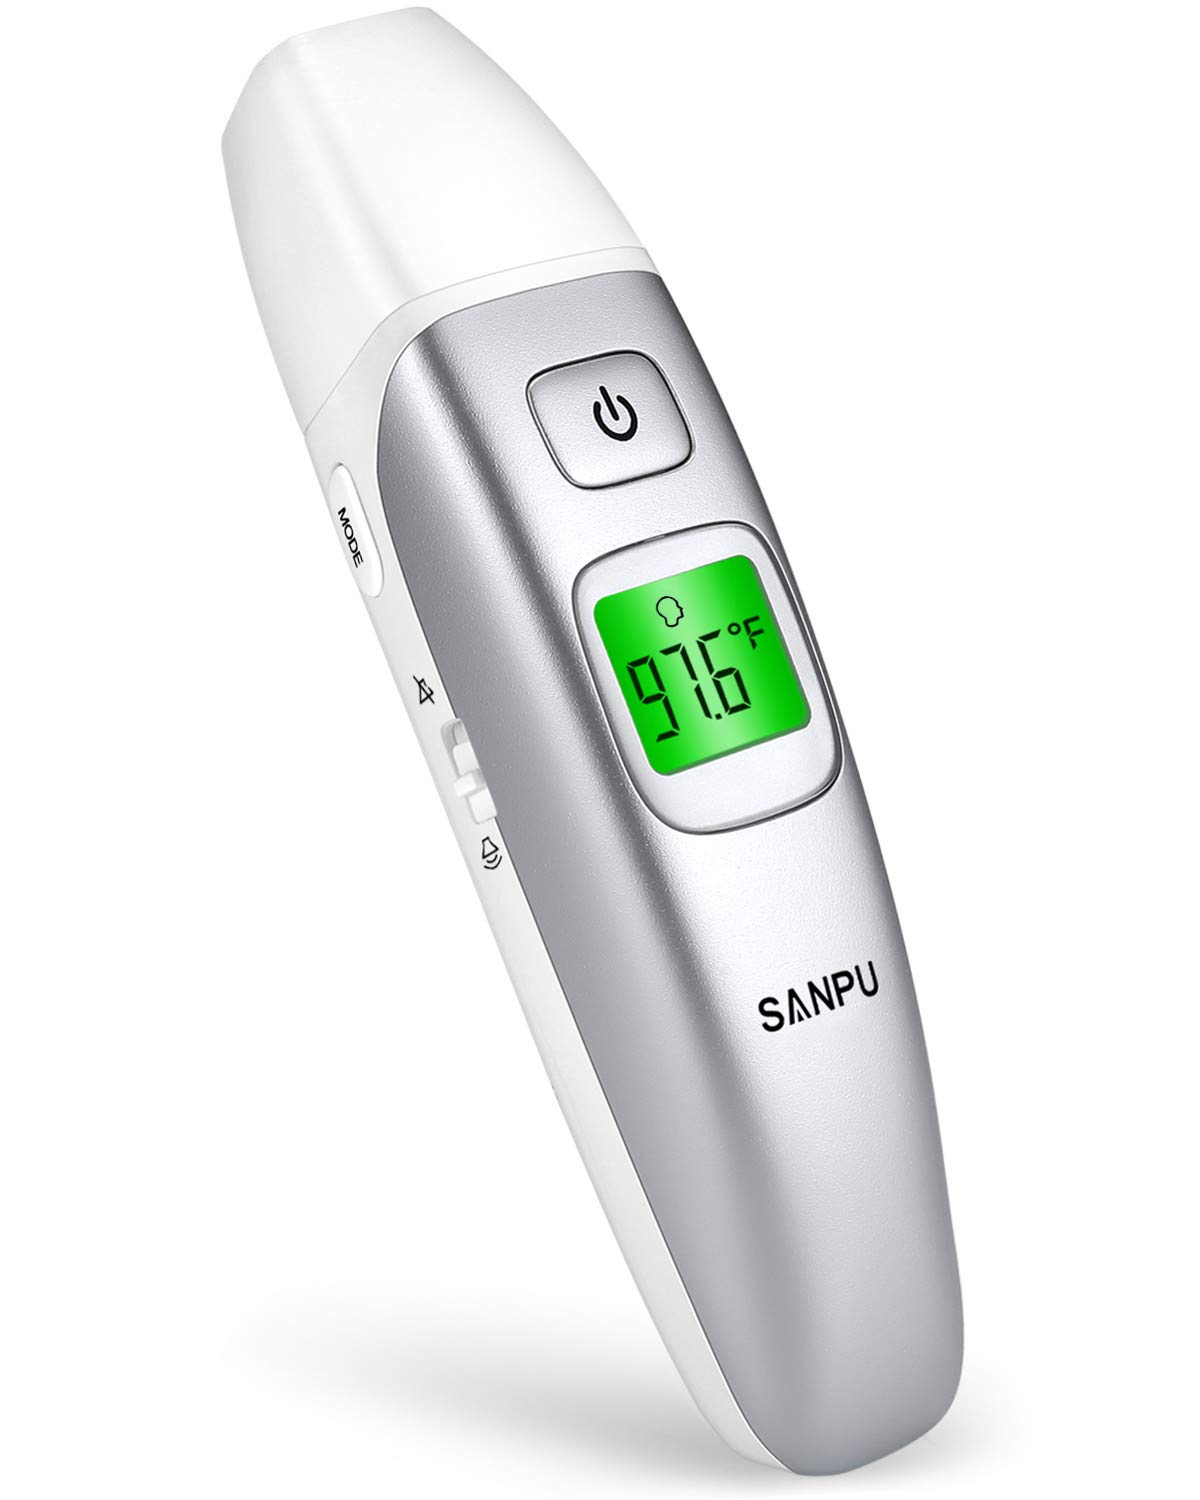 SANPU Infrared Forehead and Ear Thermometer, Suitable for Baby, Toddler and Adults with FDA and CE Approved